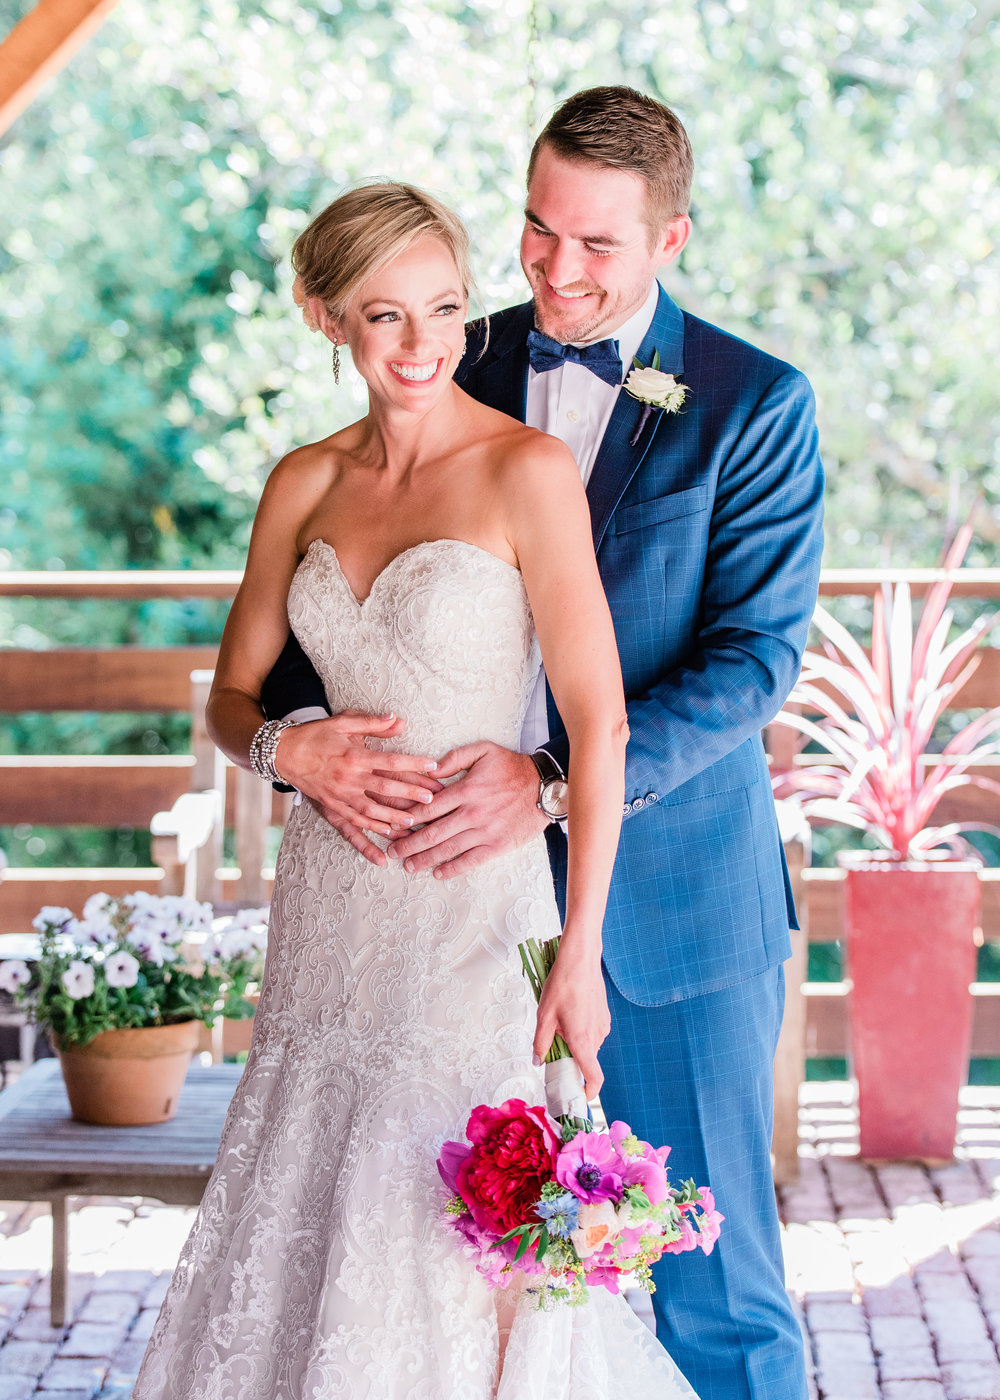 DresselWedding171KelliPricePhotography_WoodsideCA_June2018.jpg